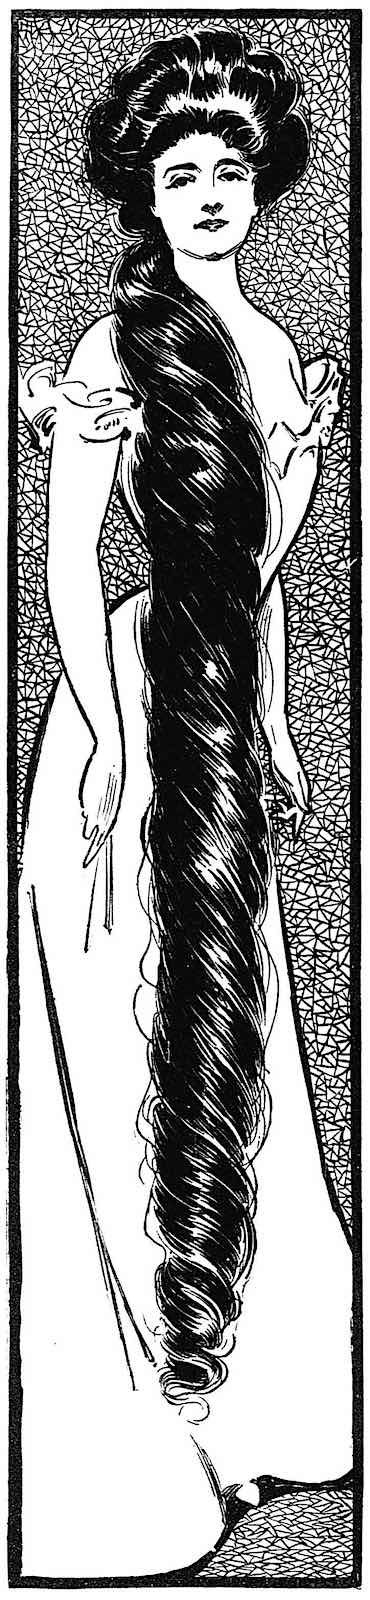 big hair in 1906, an illustration of a pretty woman with very long hair